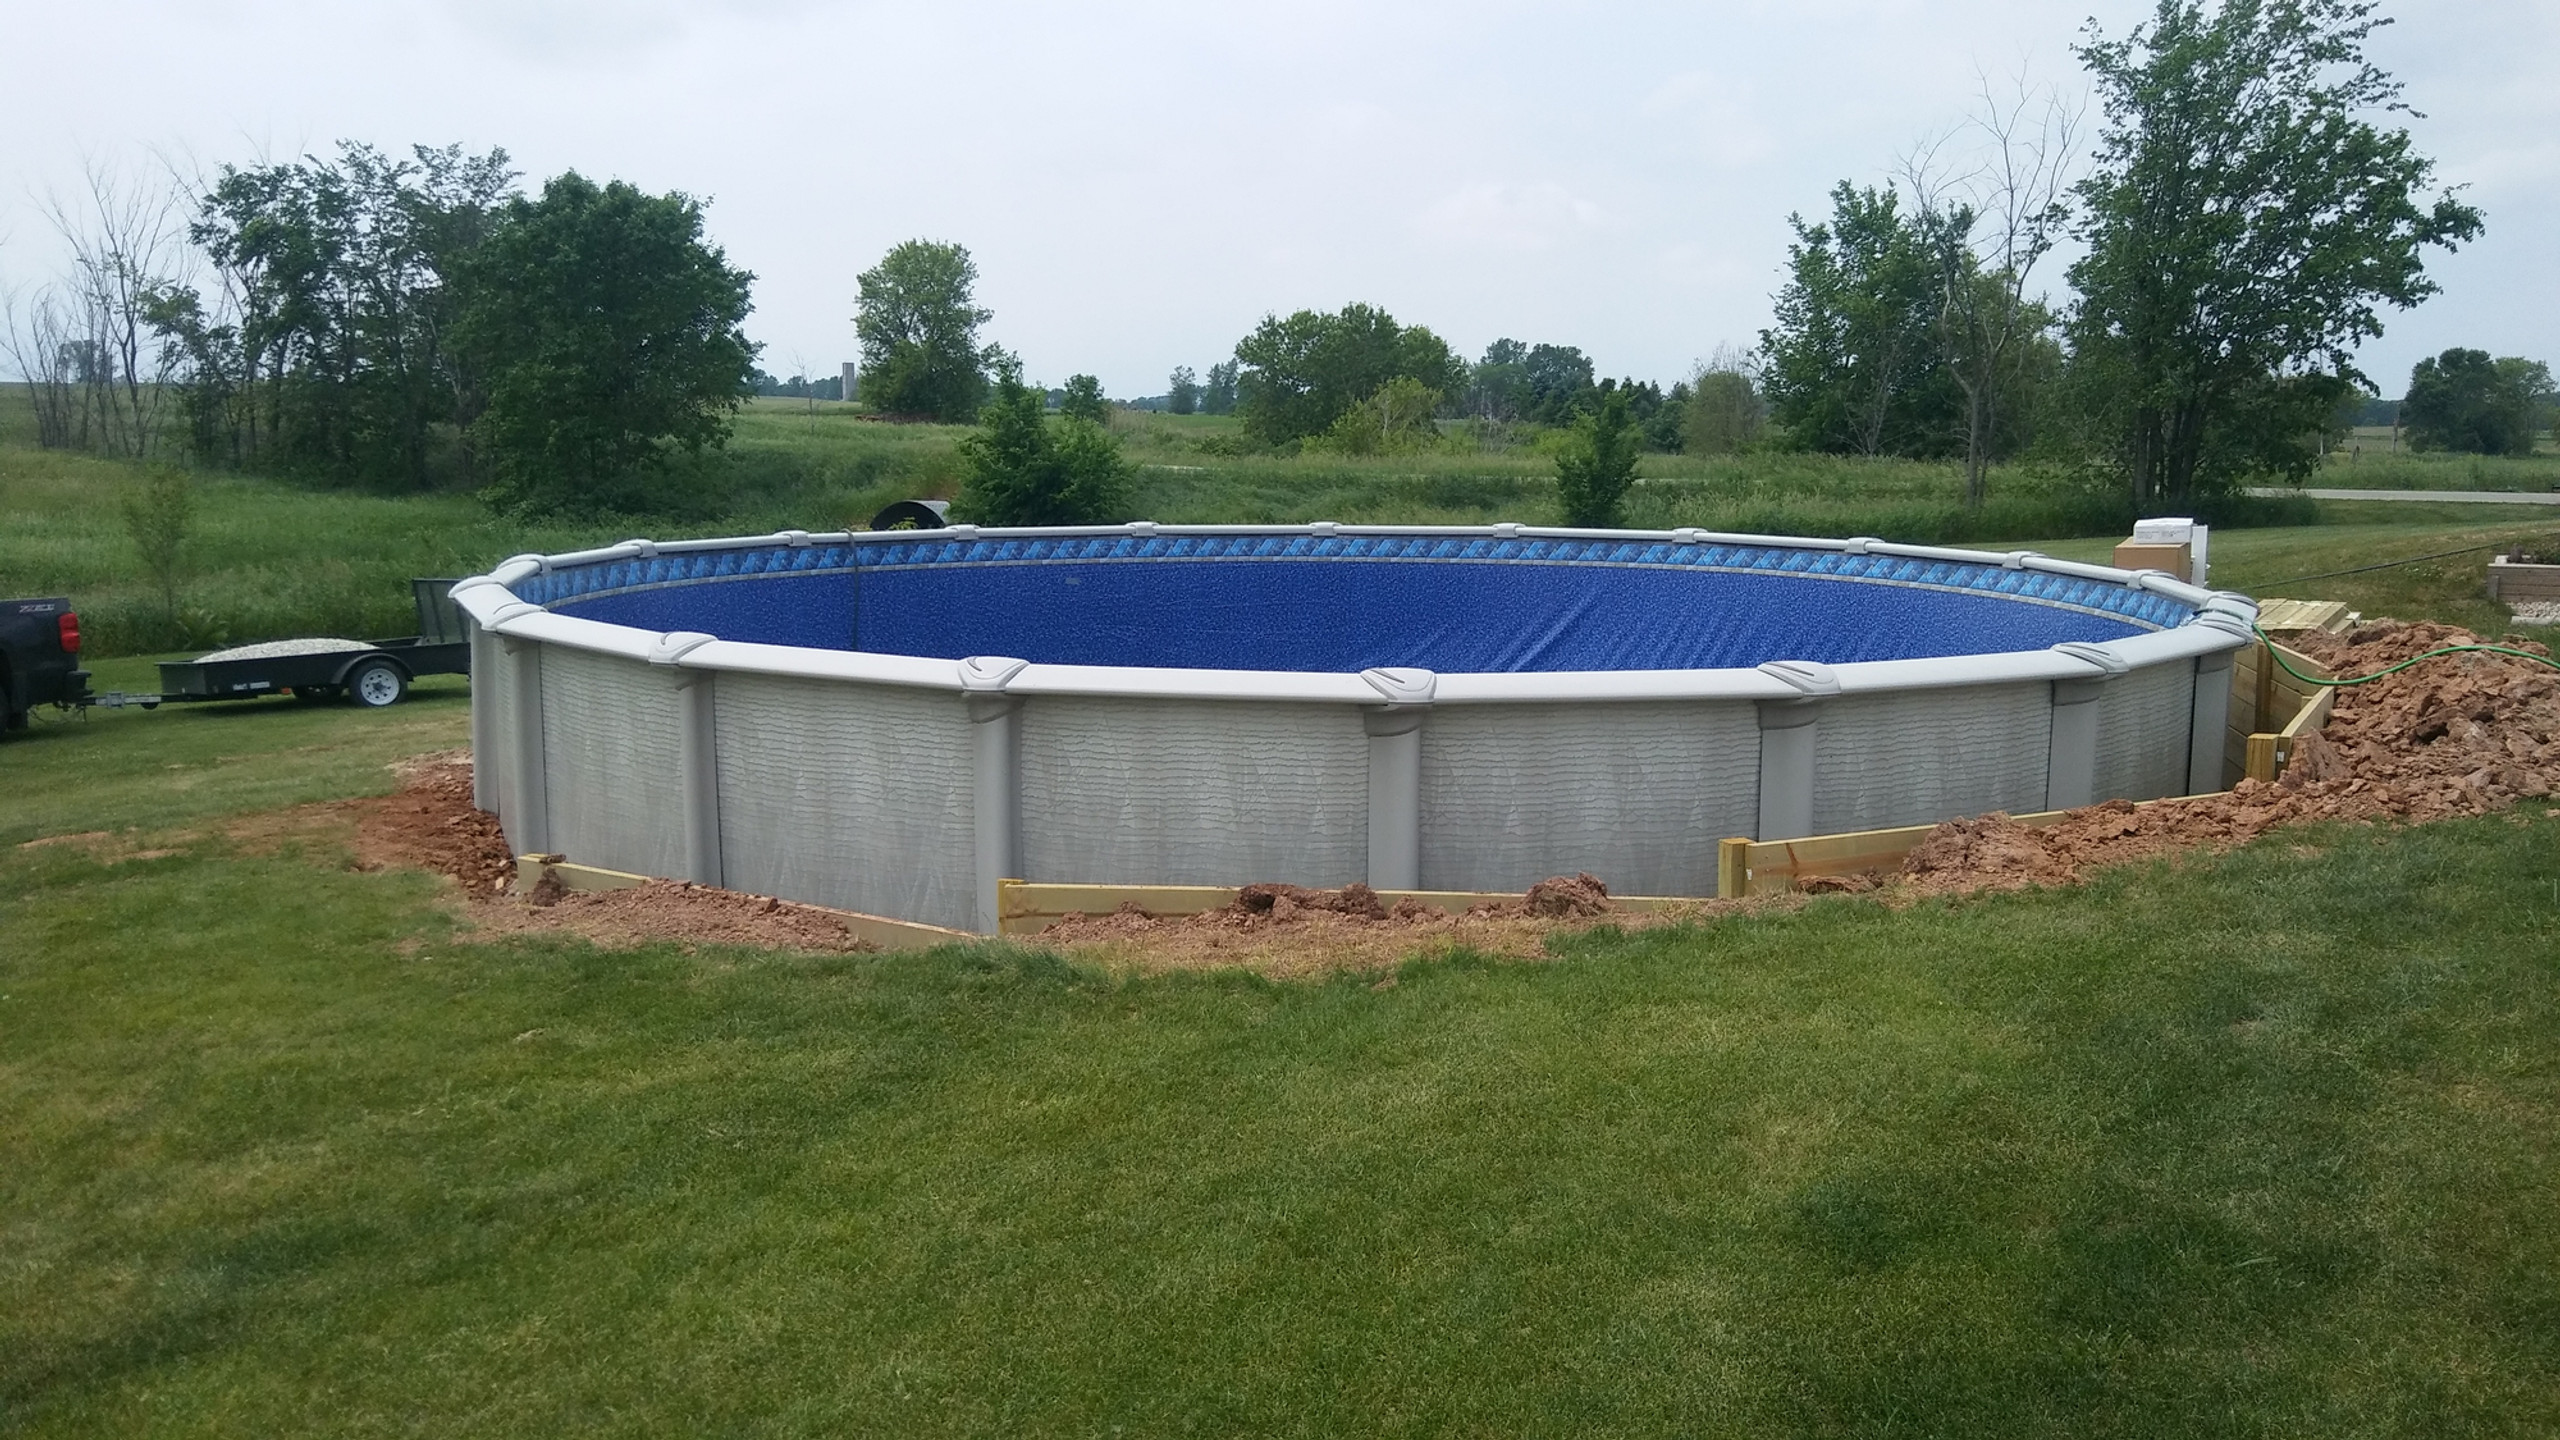 Another 30' Evolution Above Ground Pool by Pool Pros. Pool Pros built this pool in the town of Eaton WI in 2017. This pool was unique as it required us to excavate over 3' into the side of a hill and build a retaining wall to hold back the exposed dirt.